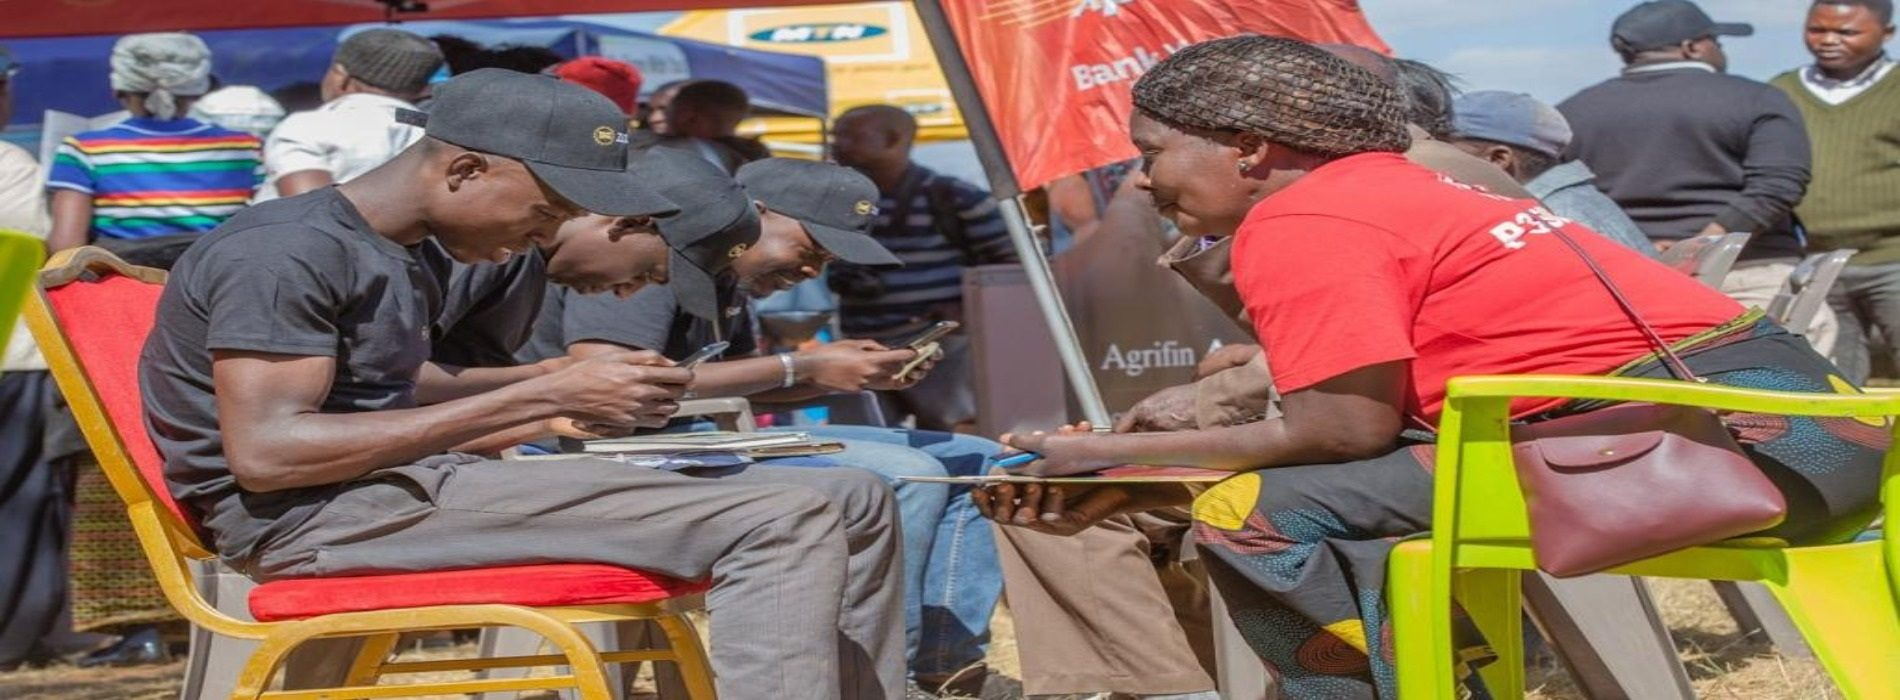 AgriPay Brings Digital Banking to Thousands of Zambian Farmers